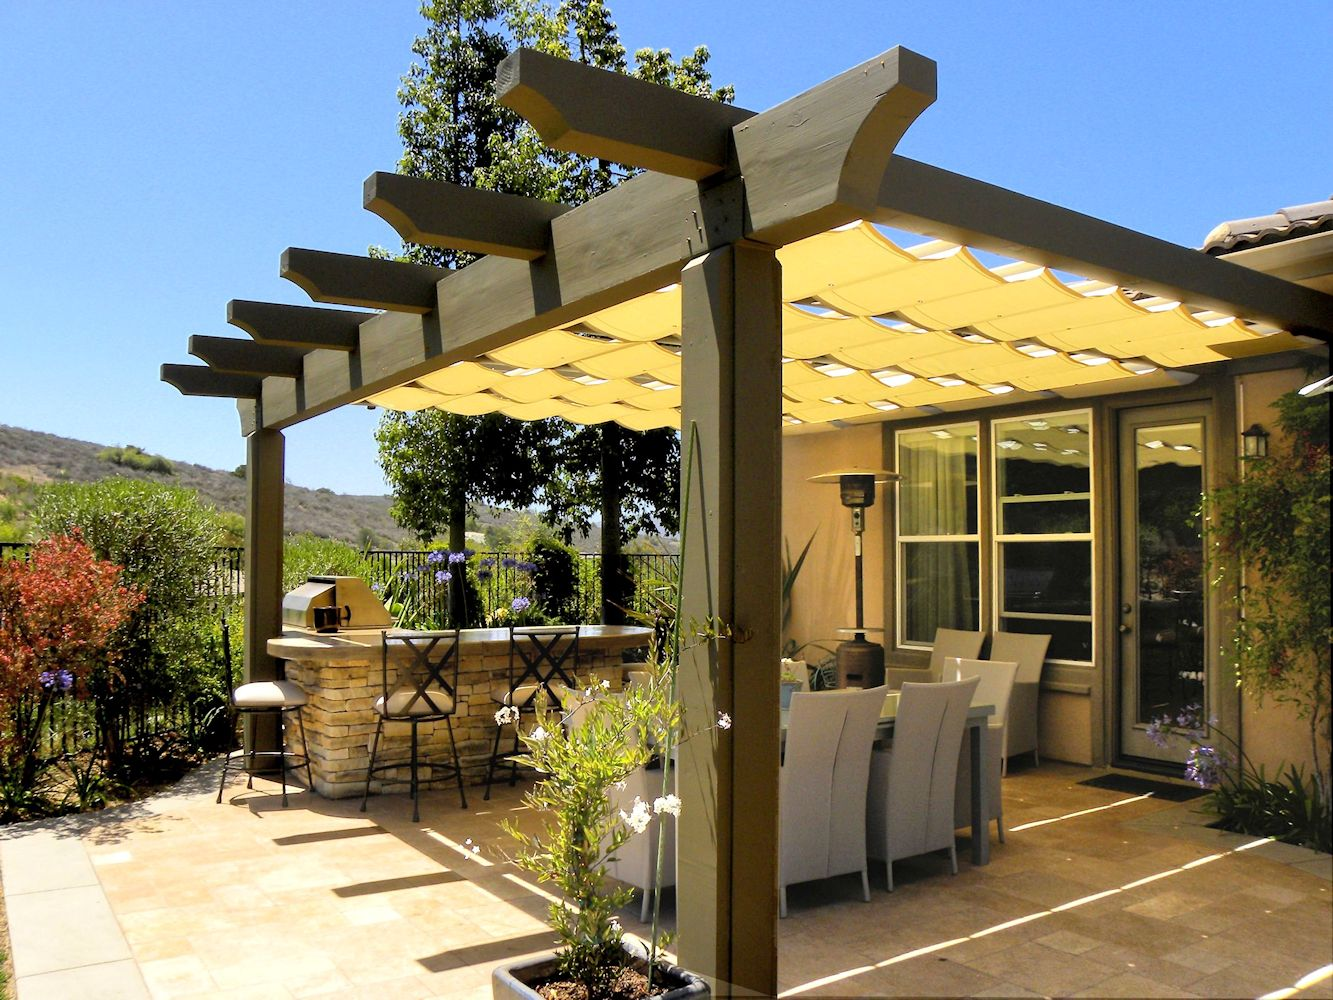 Canopies And Tarps : The artistic way to do shade alpha canvas awning